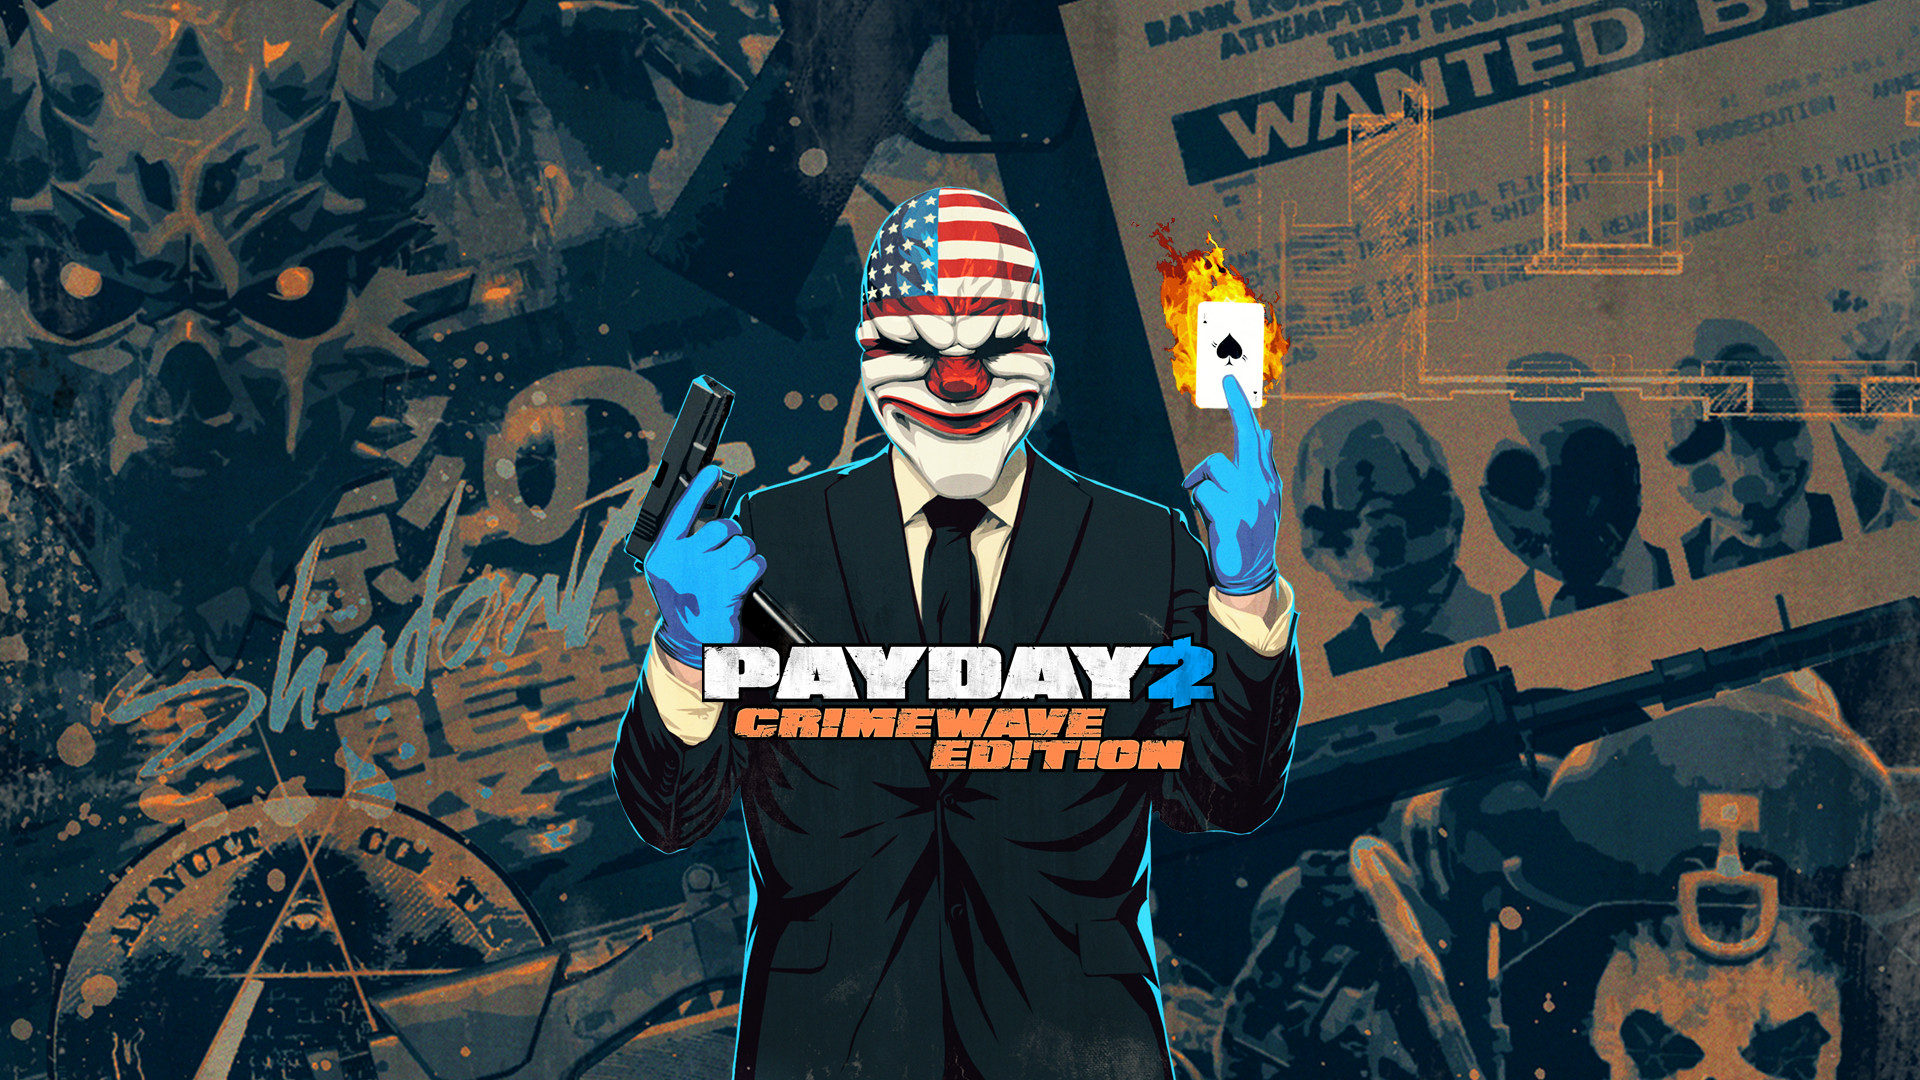 1920x1080 payday: the heist hoxton mask colt m1911 gun weapon money bank robbery overkill software video